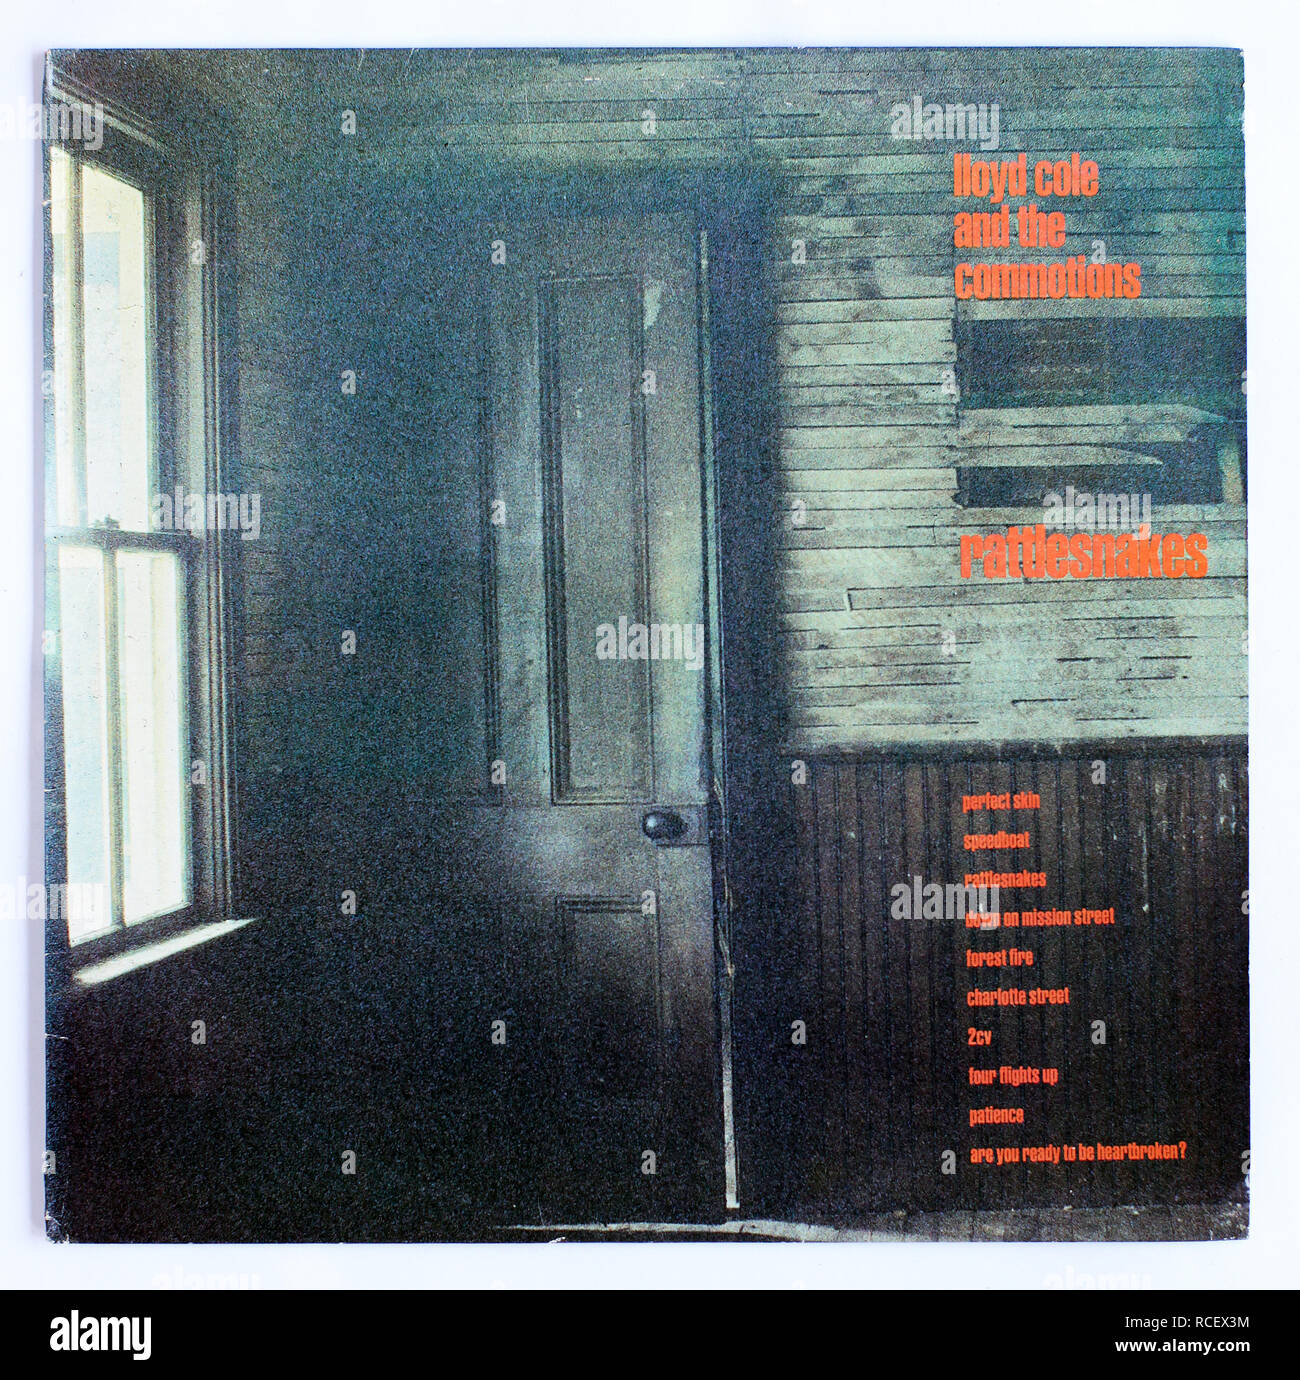 The cover of Rattlesnakes by Lloyd Cole and the Commotions. 1984 album on Polydor Records - Stock Image